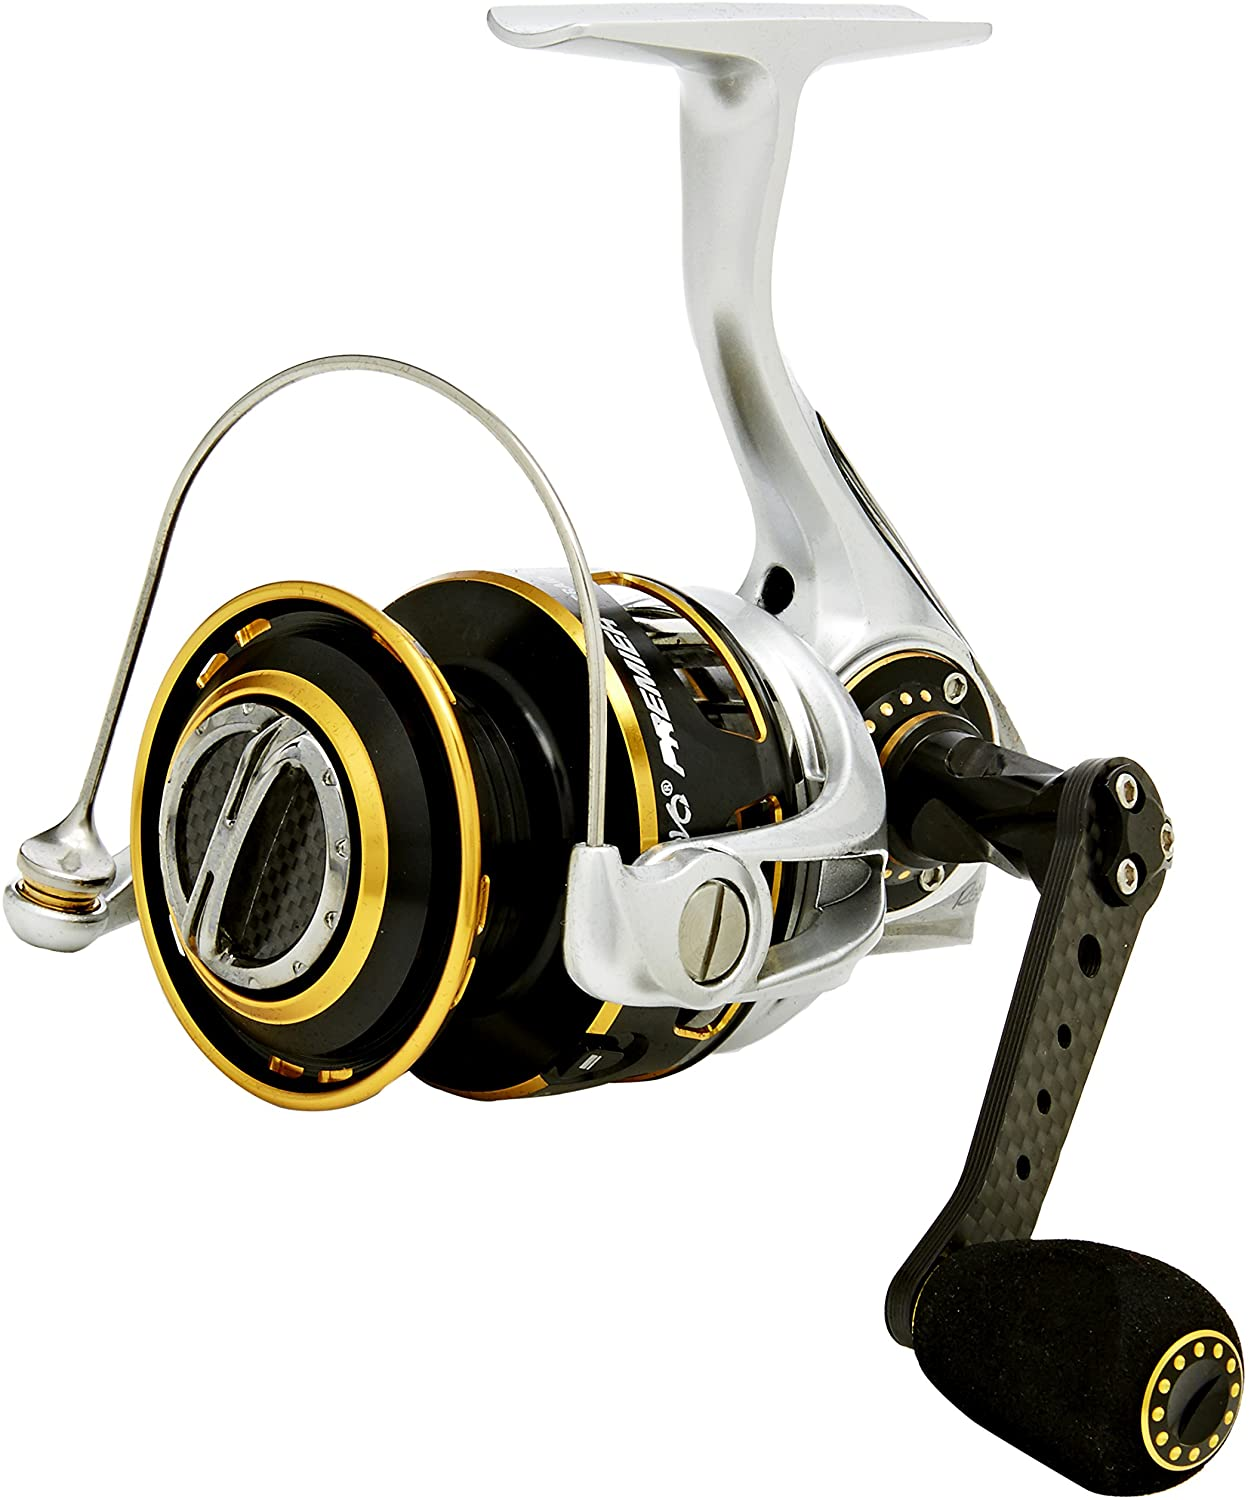 The Abu Garcia Revo Premier Reel